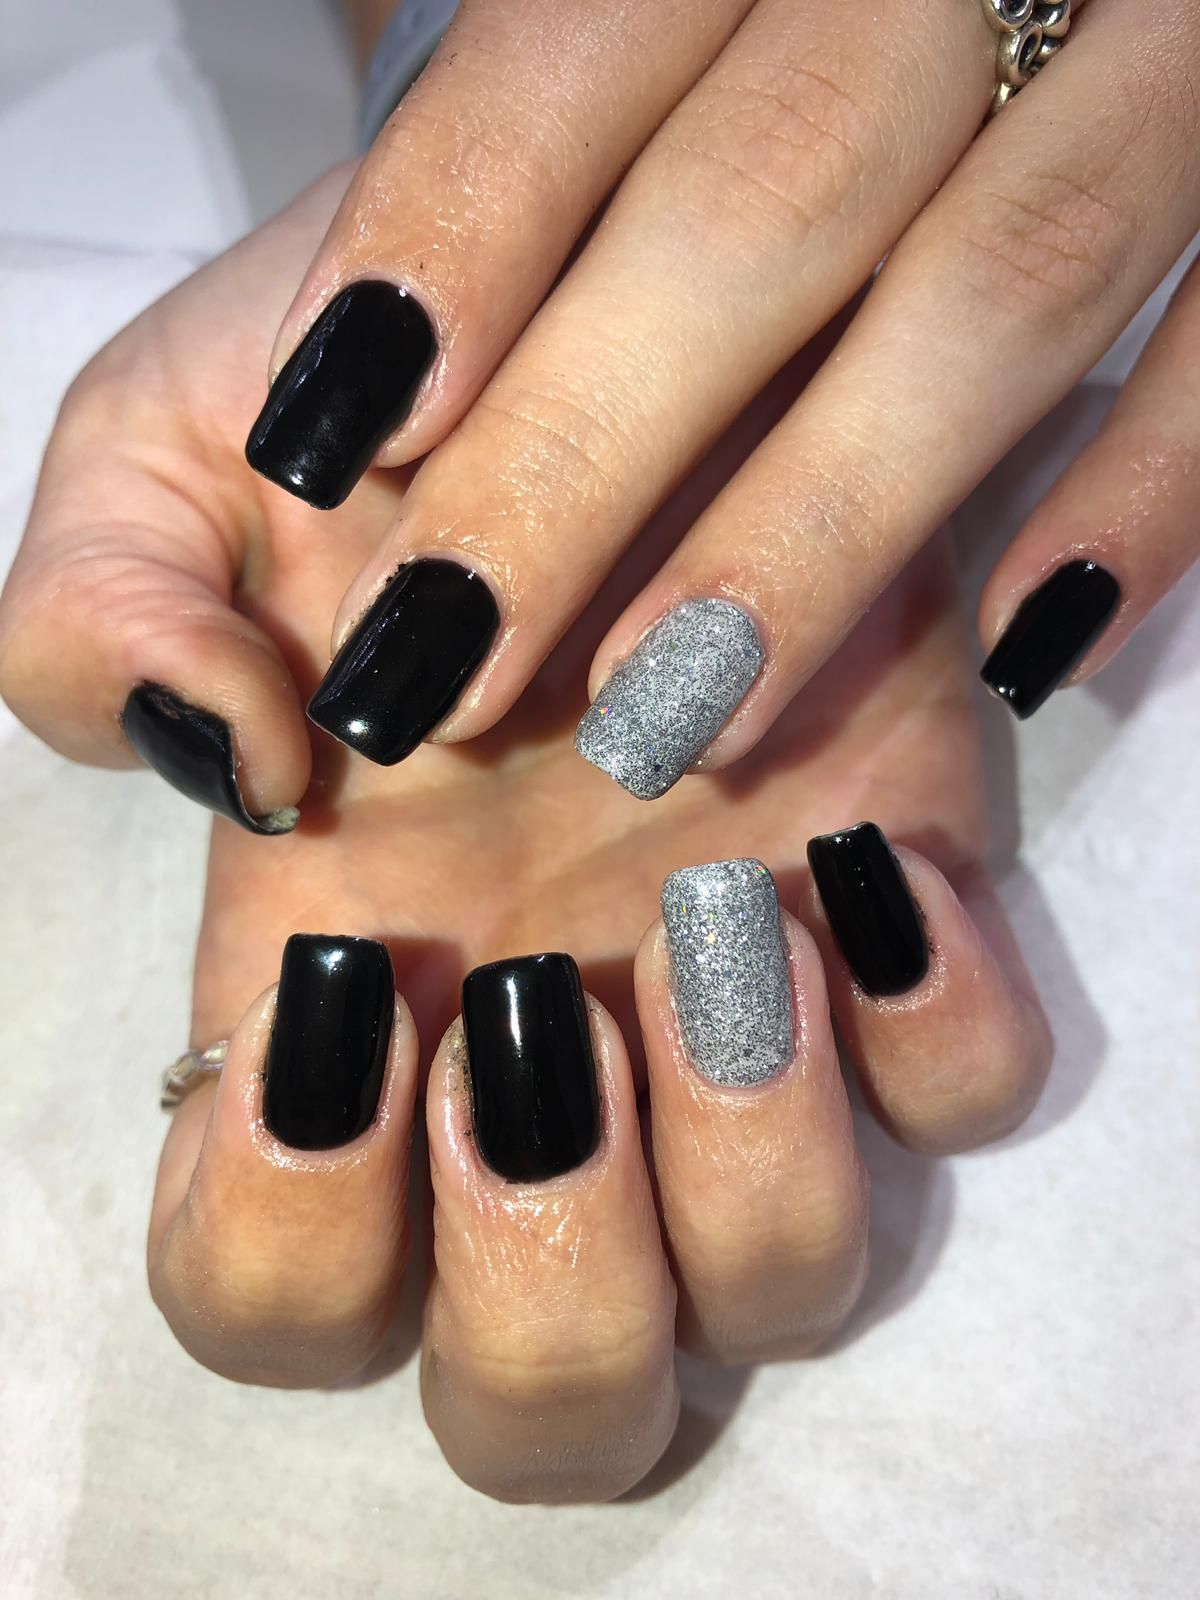 Beautiful Set Of Gel Nails With Black And Silver Colours Gelnails Black Silver Glitter Beauty Nails Gel Nails Nails